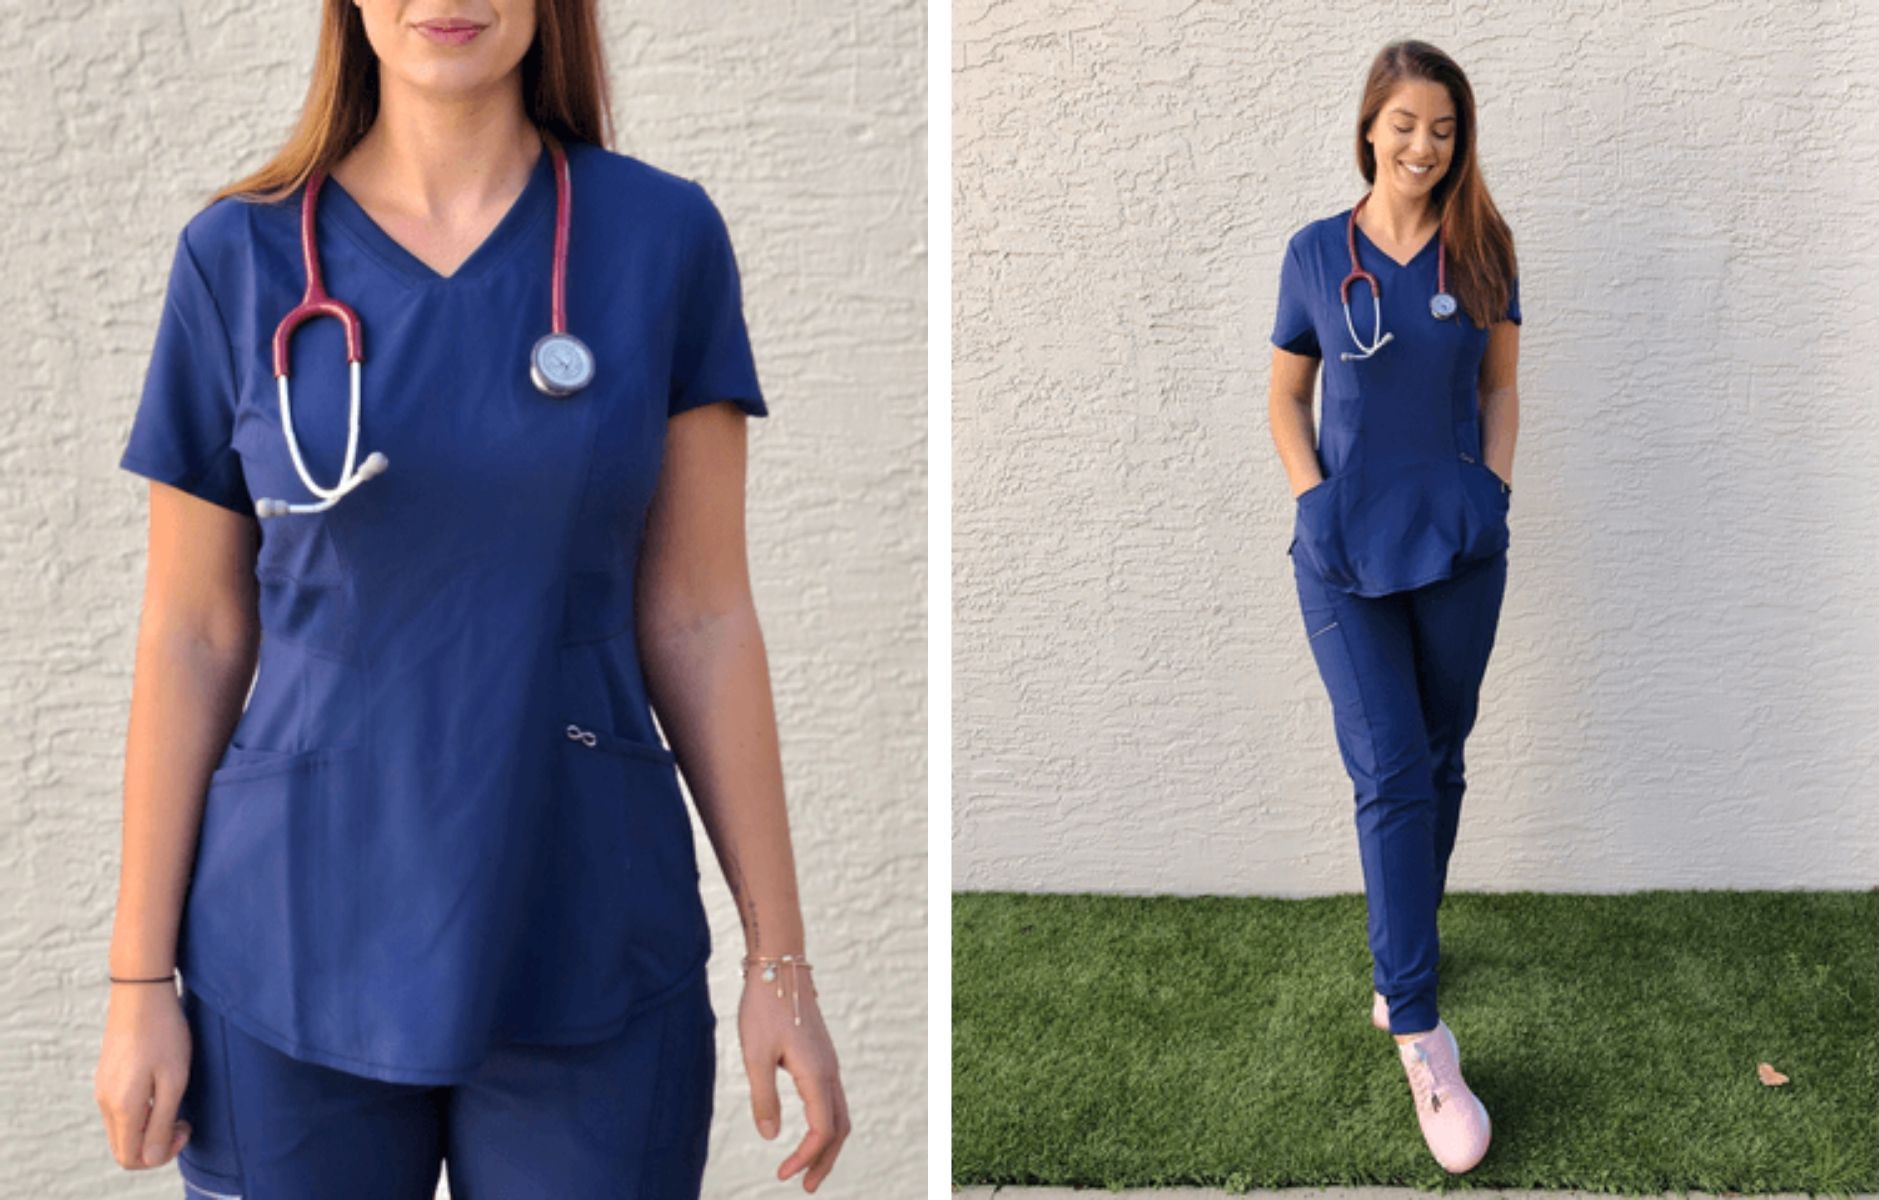 Tried & Trusted: Cherokee Scrubs Trusted Health